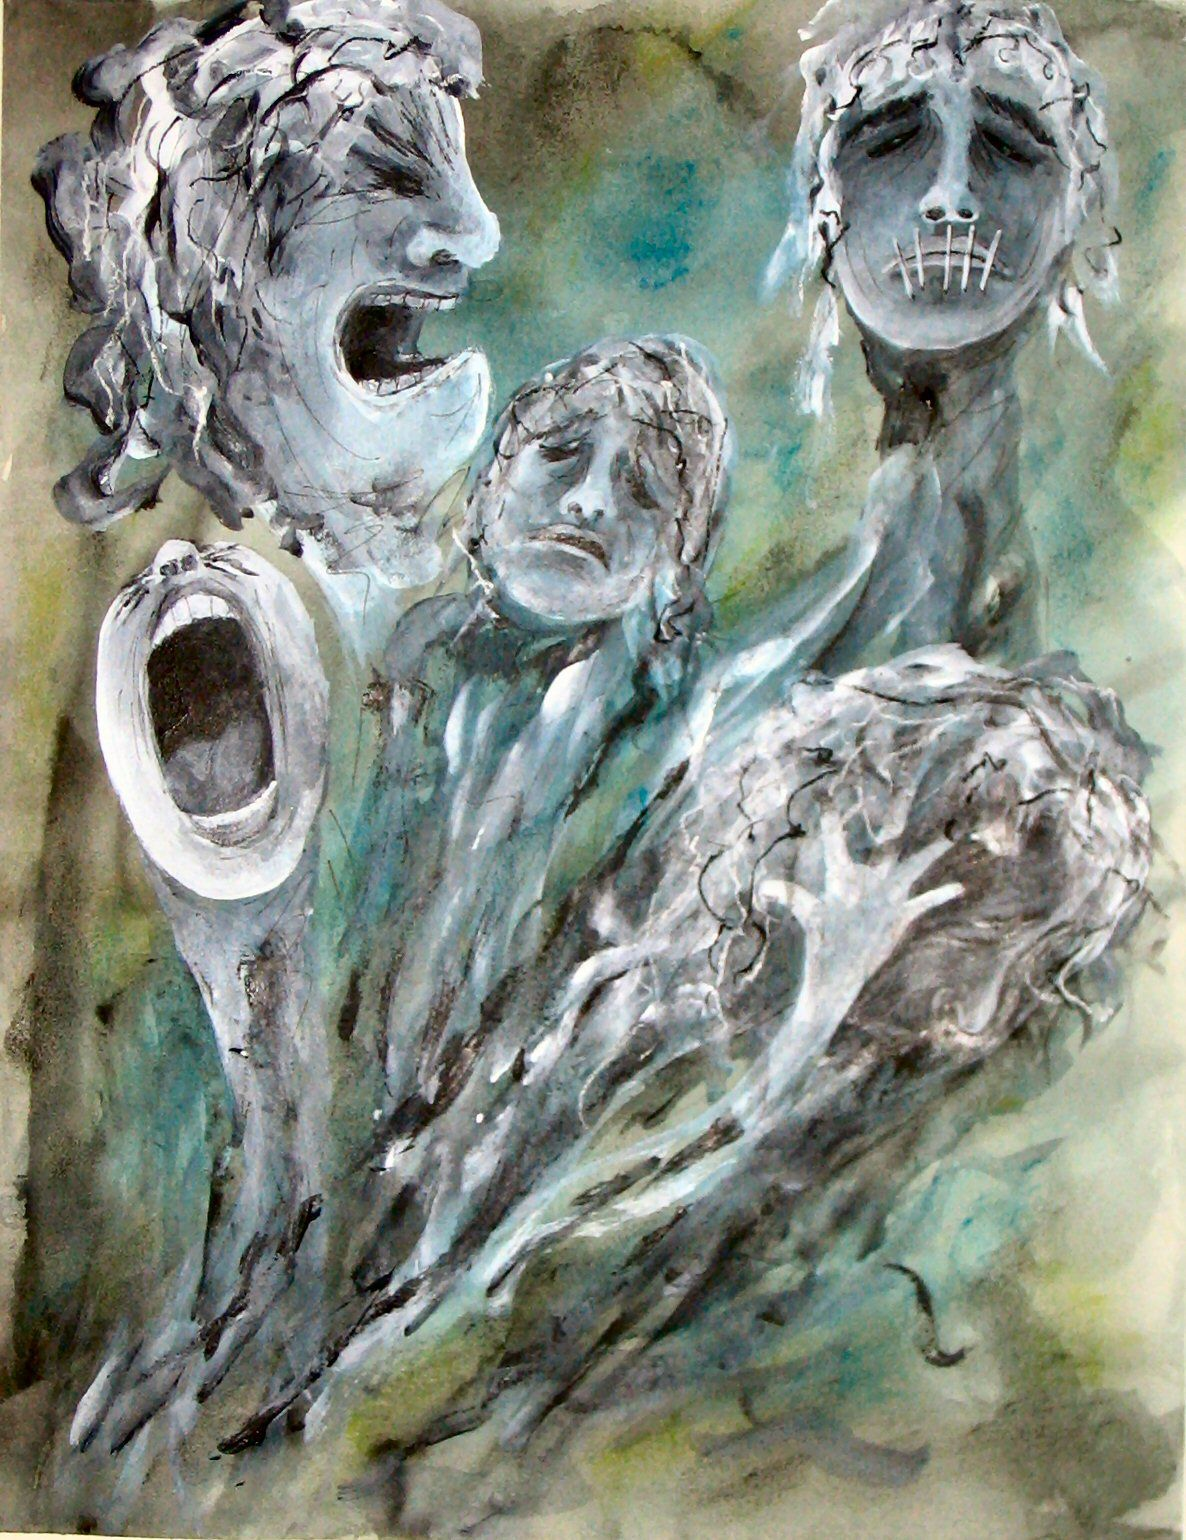 Five Faces Of Grief Image Inspired By An Experiential